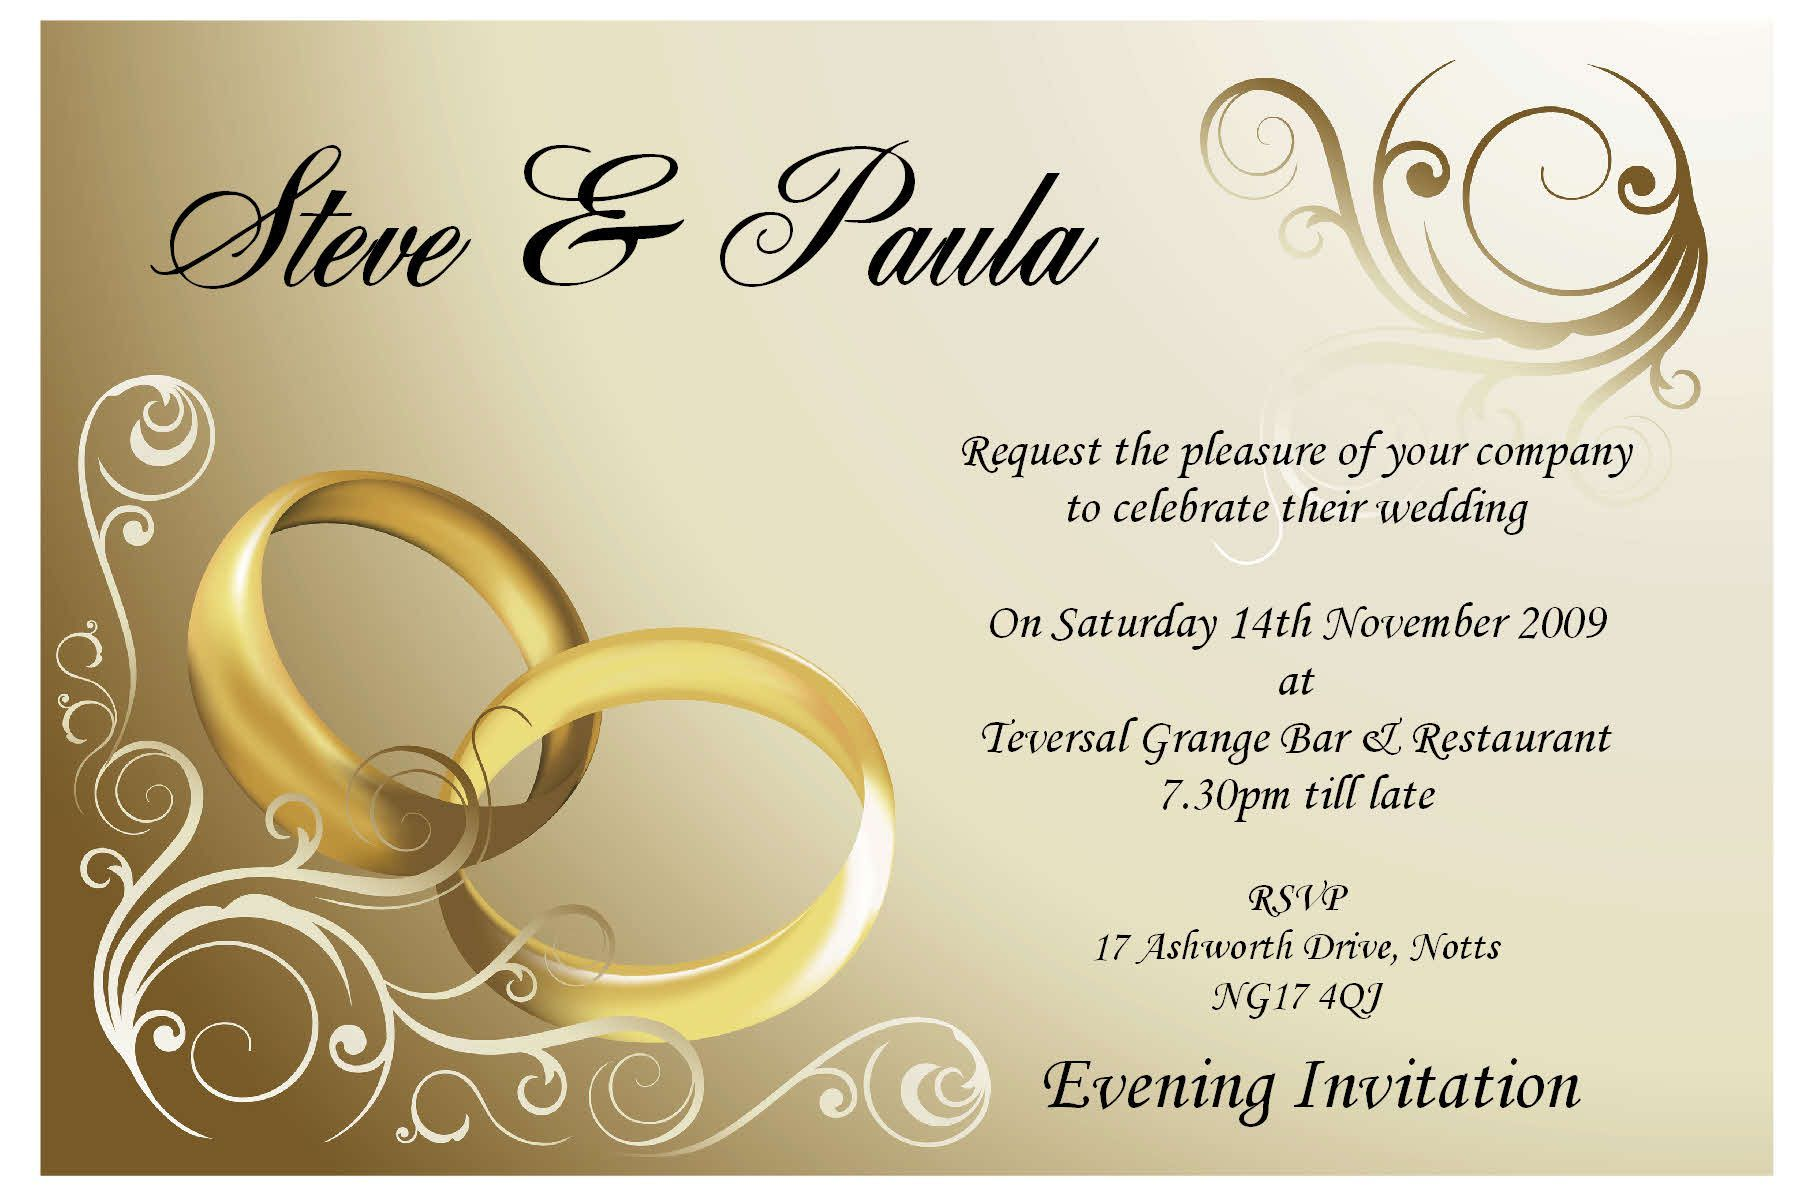 wedding invite design online hola klonec co